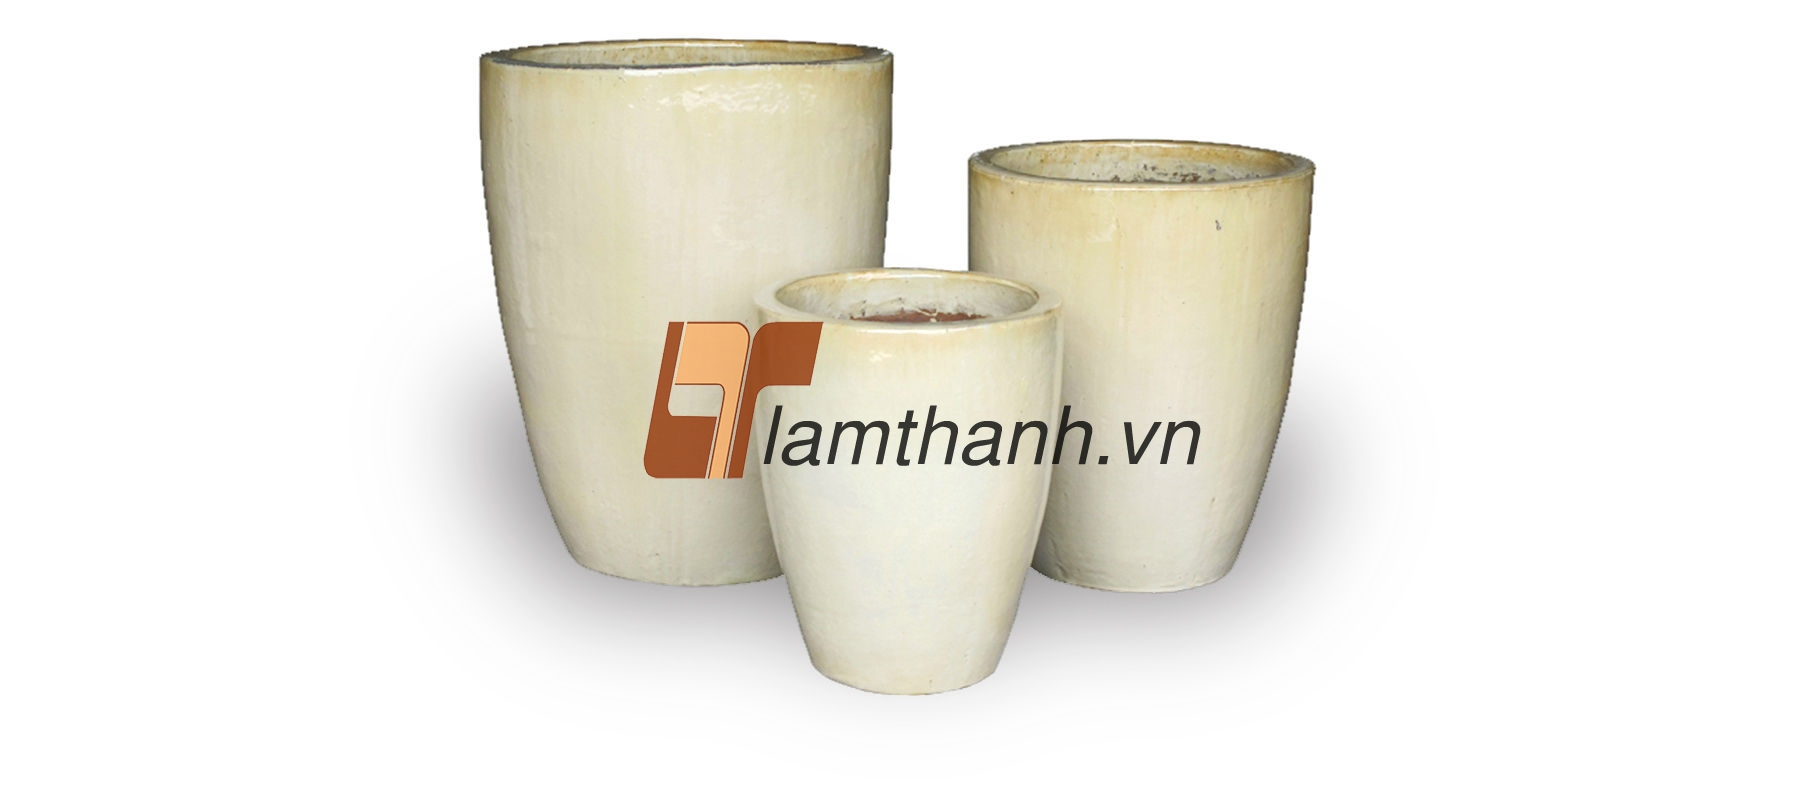 vietnam terracotta, outdoor glazed04